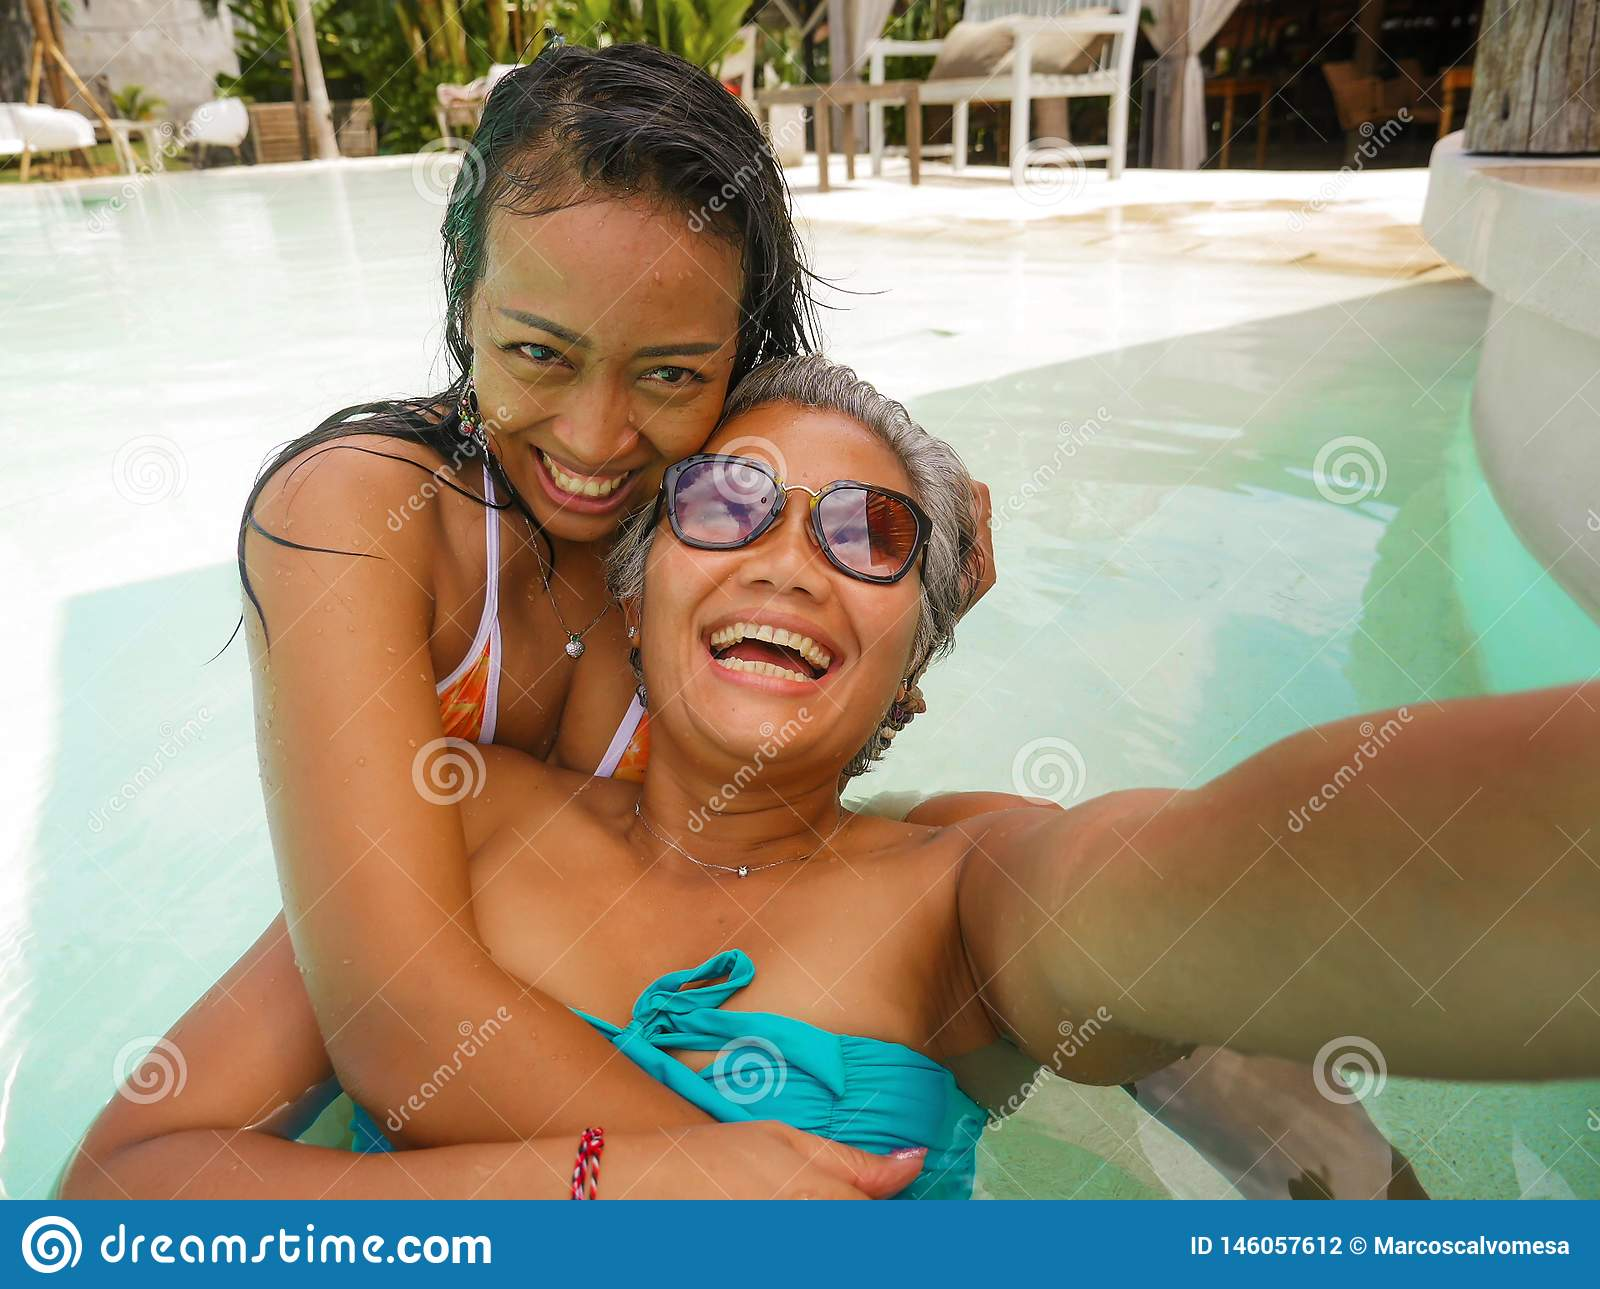 Lifestyle outdoors portrait of Asian girlfriends enjoying Summer holidays at tropical beach resort swimming pool taking selfie